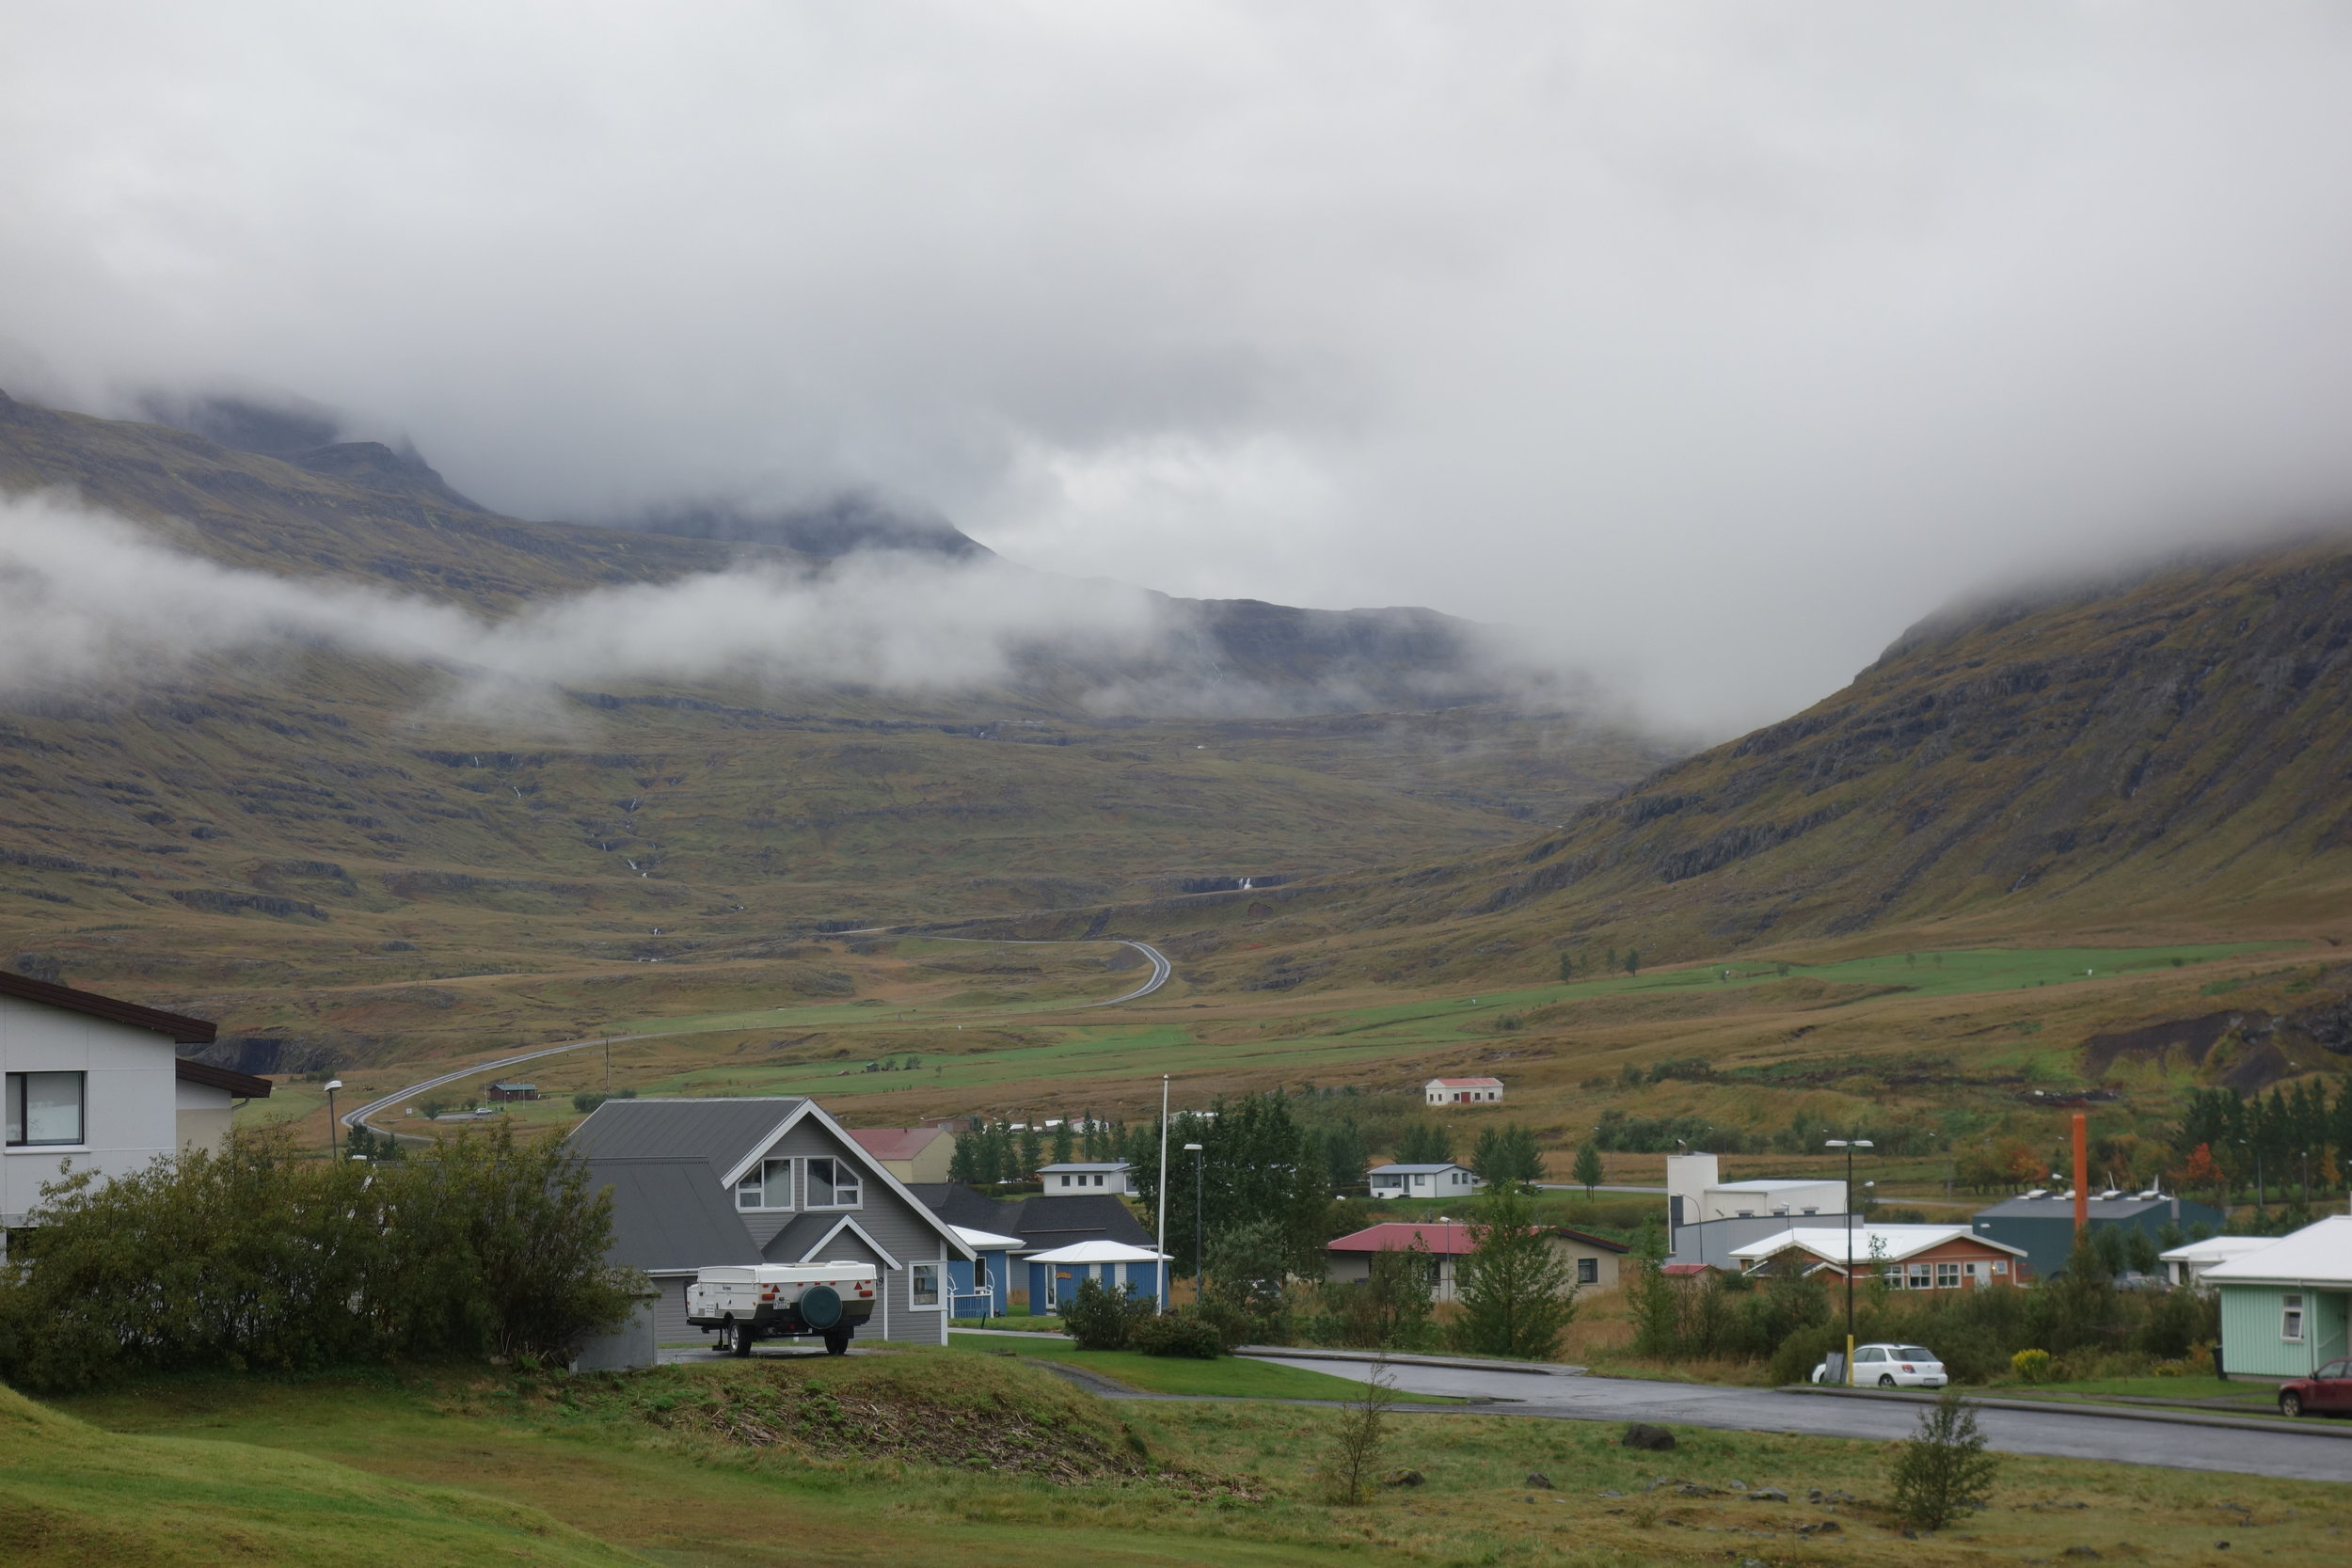 The road the leads into town and continues on for 27 km, weaving through the desolate fjords.